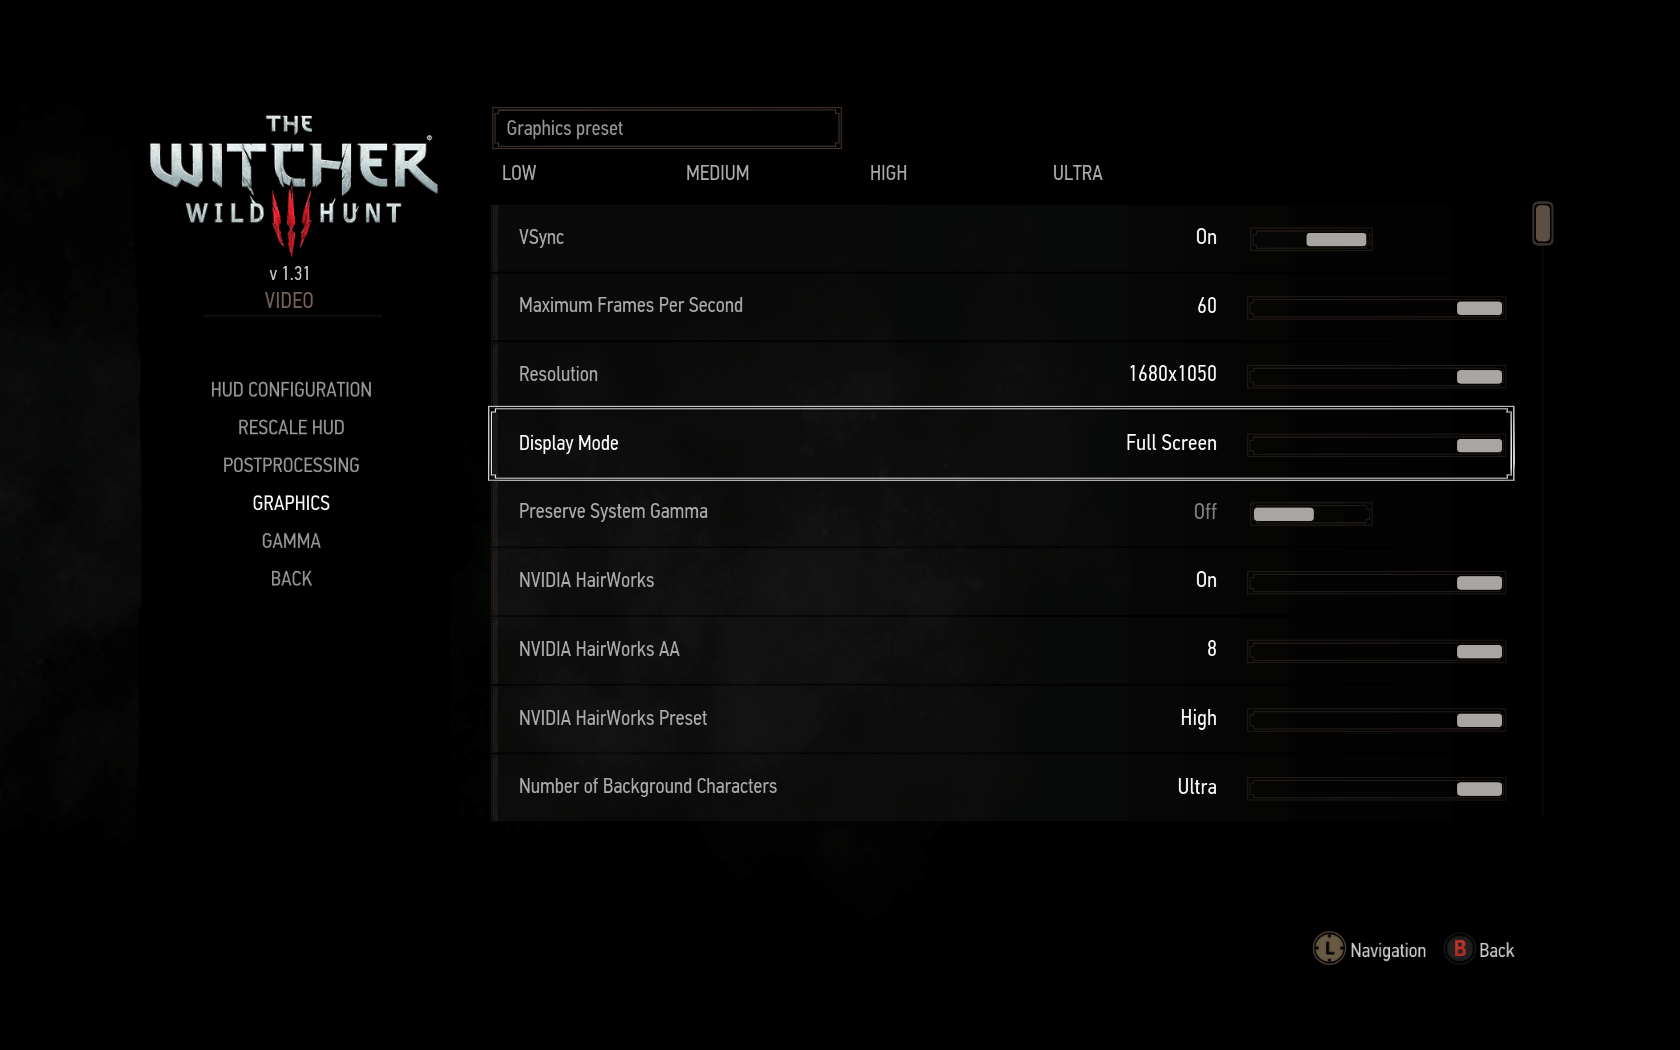 How to fix dark gamma in the Witcher 3?